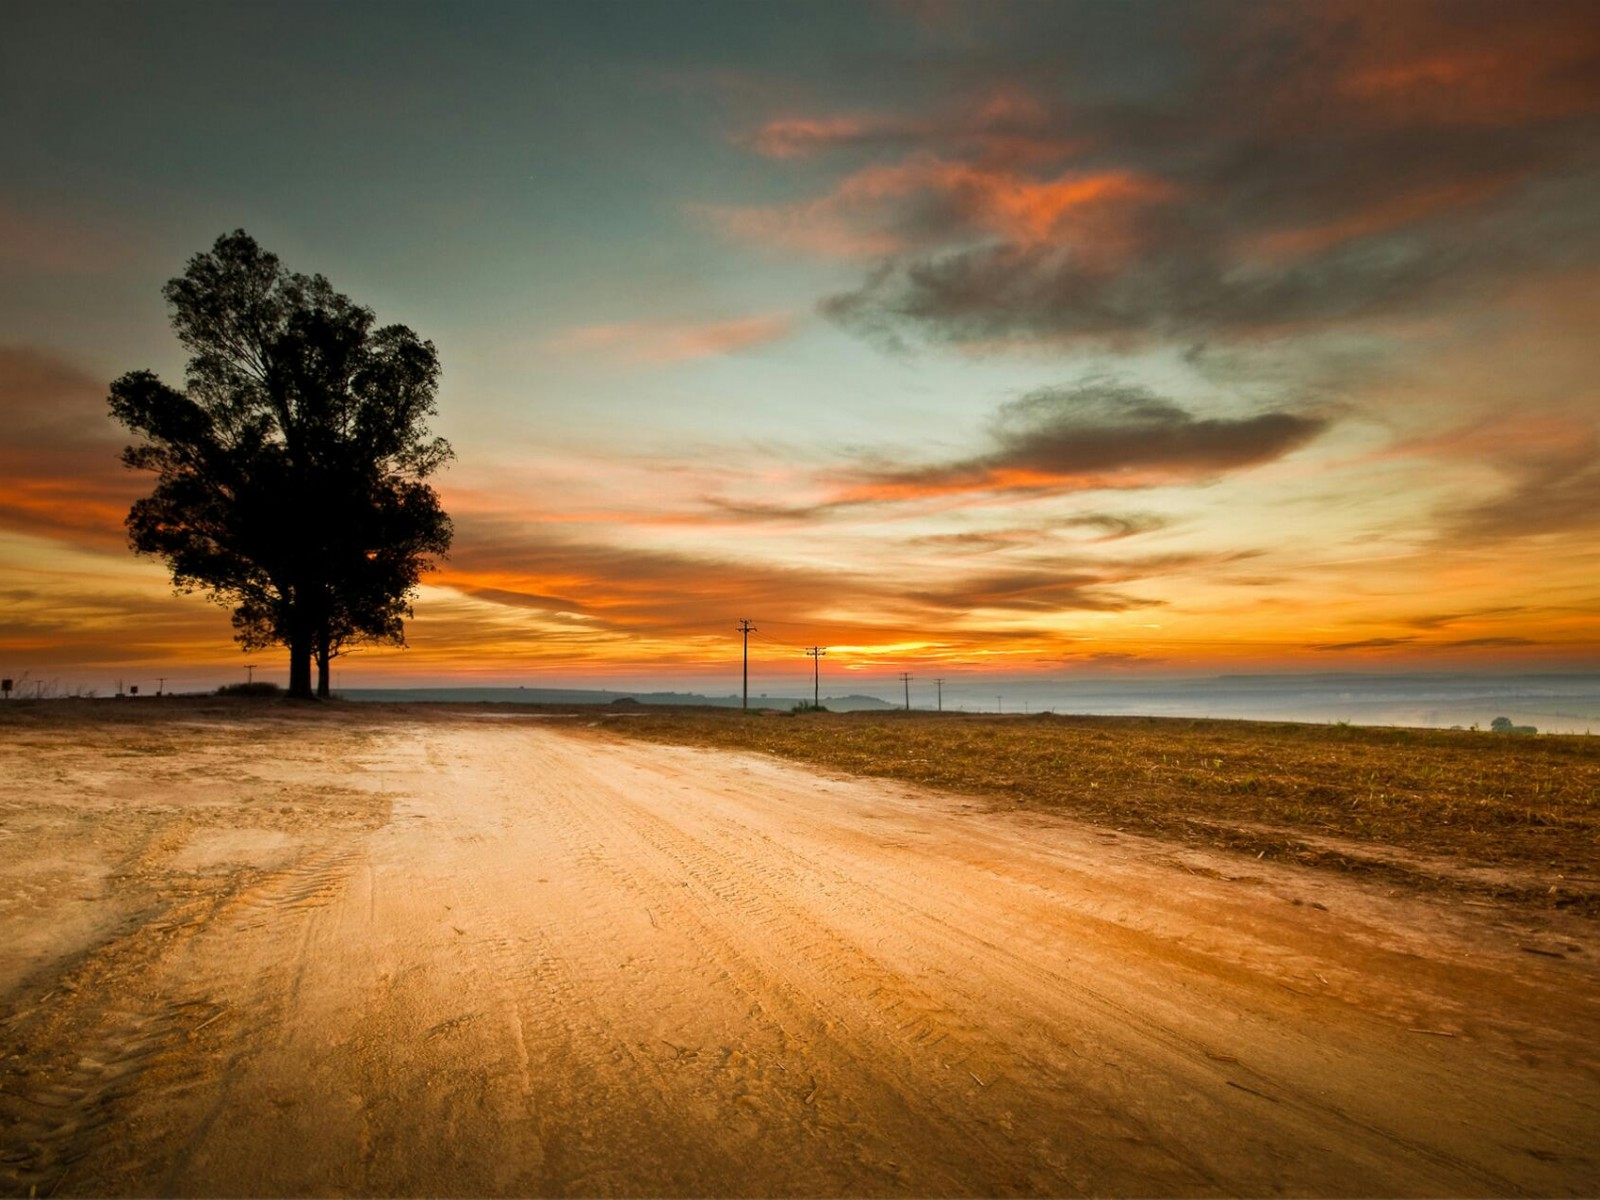 Backgrounds ~ PIC EDITORS ZONE | PHOTO EDITORS | PNG ...